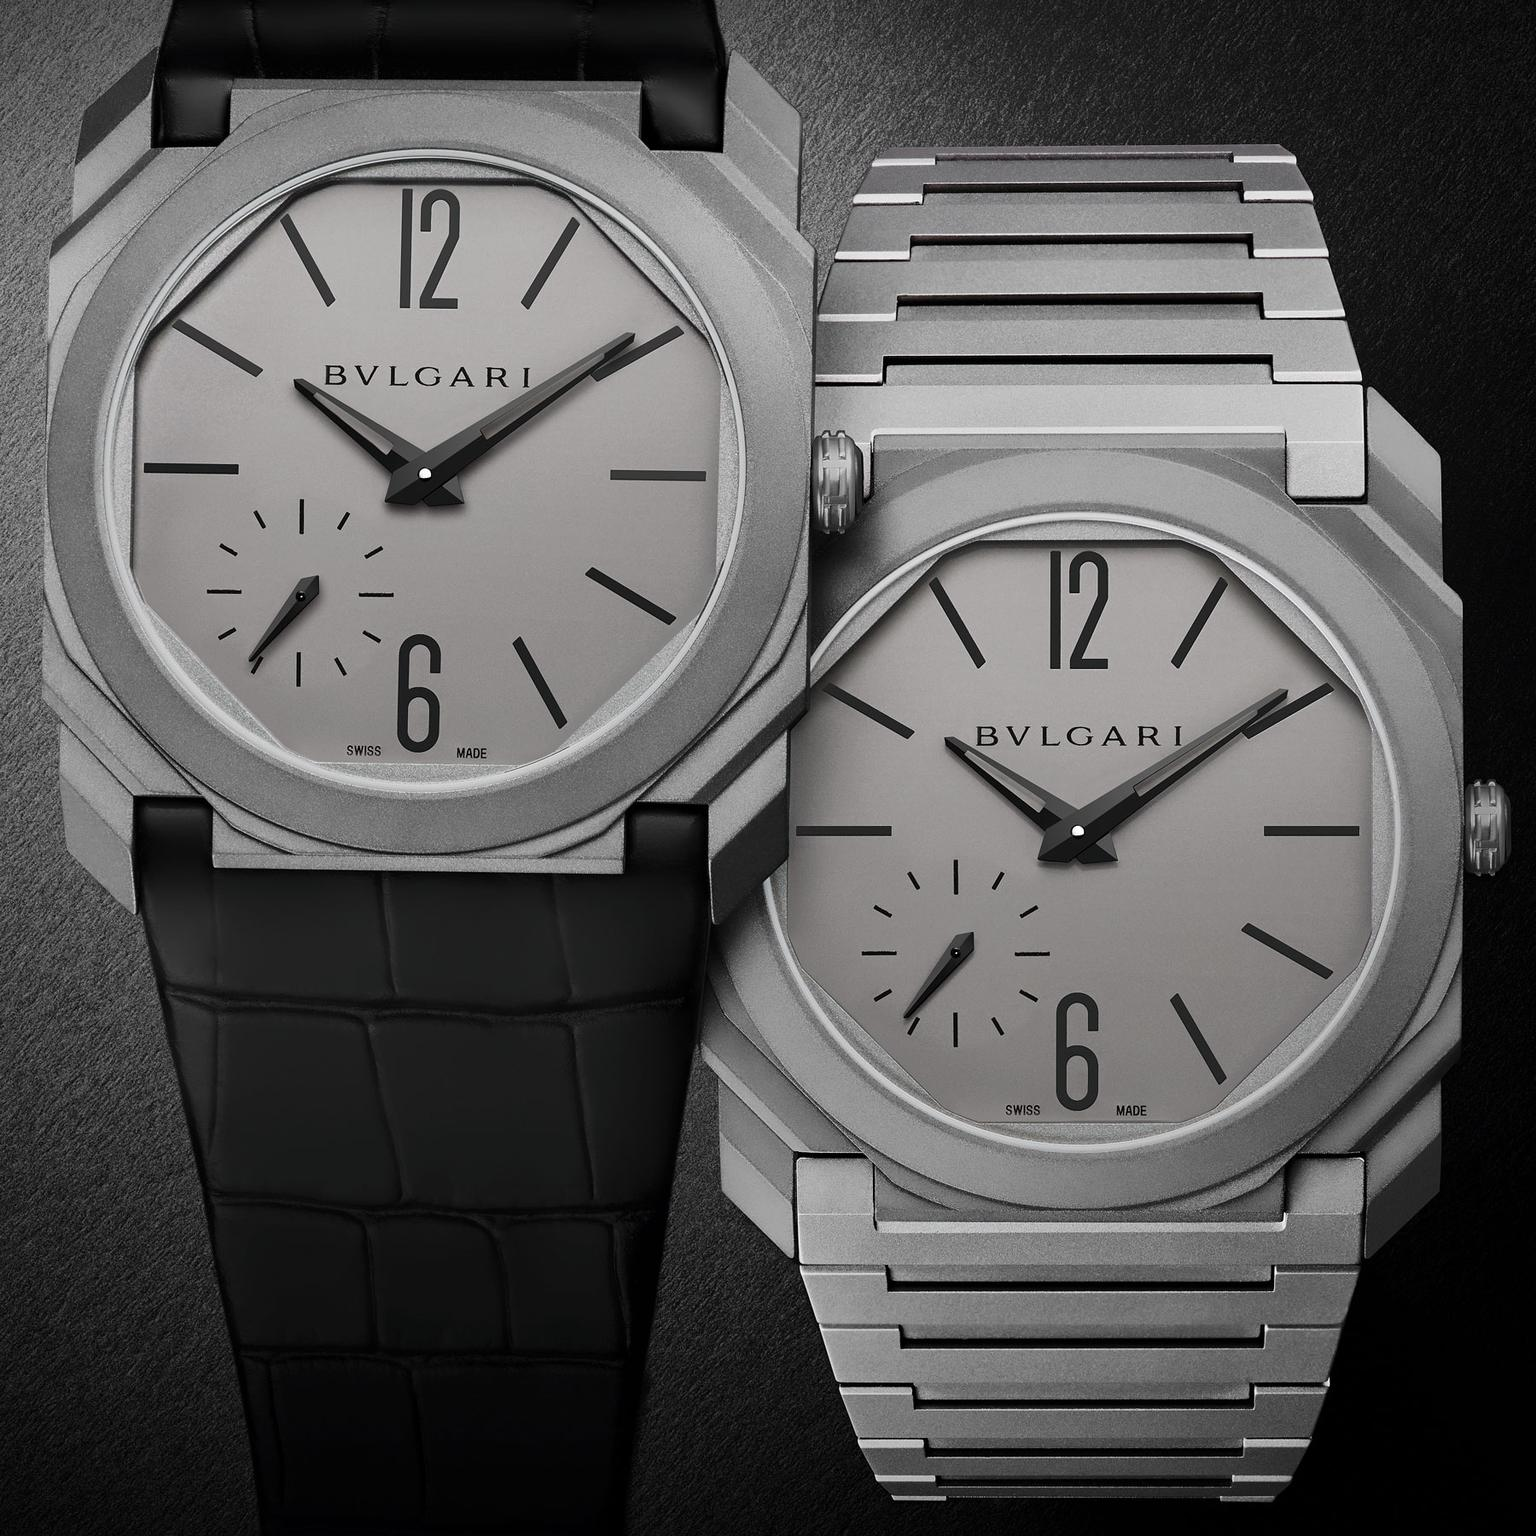 Bulgari Octo Finissimo Automatic watch in titanium